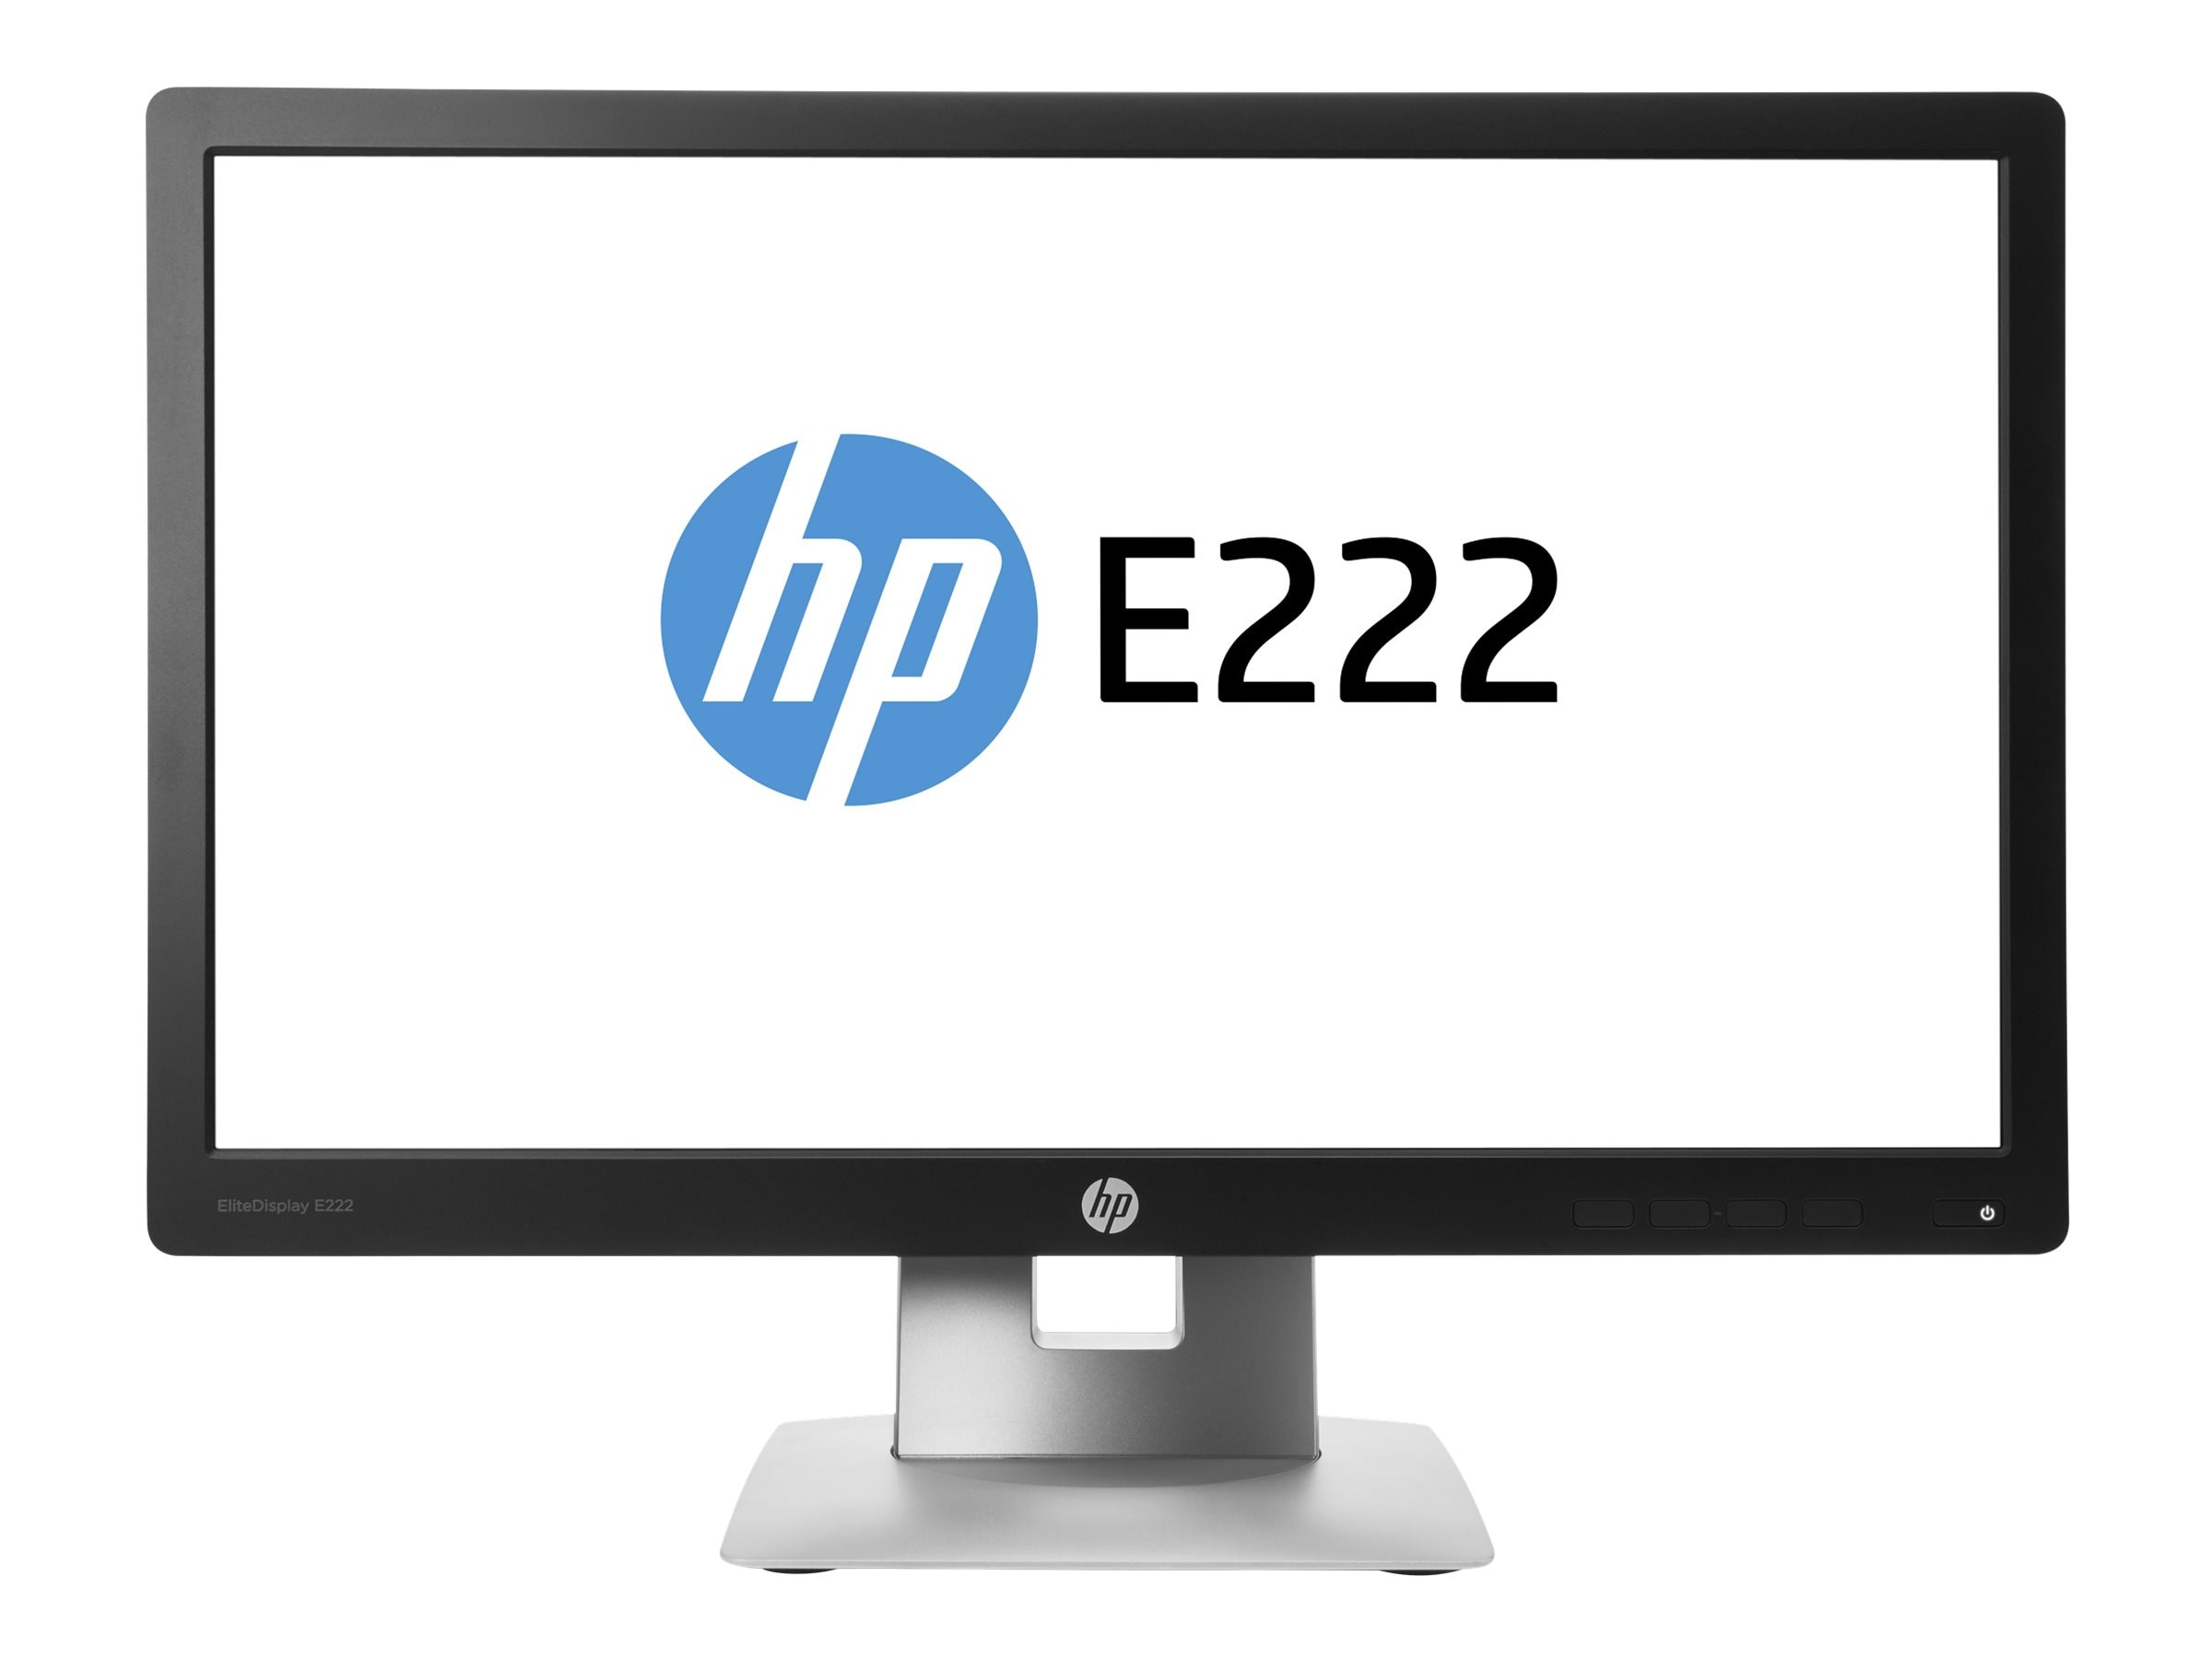 HP Smart Buy 21.5 E222 Full HD LED-LCD Monitor, Black, M1N96A8#ABA, 30737311, Monitors - LED-LCD